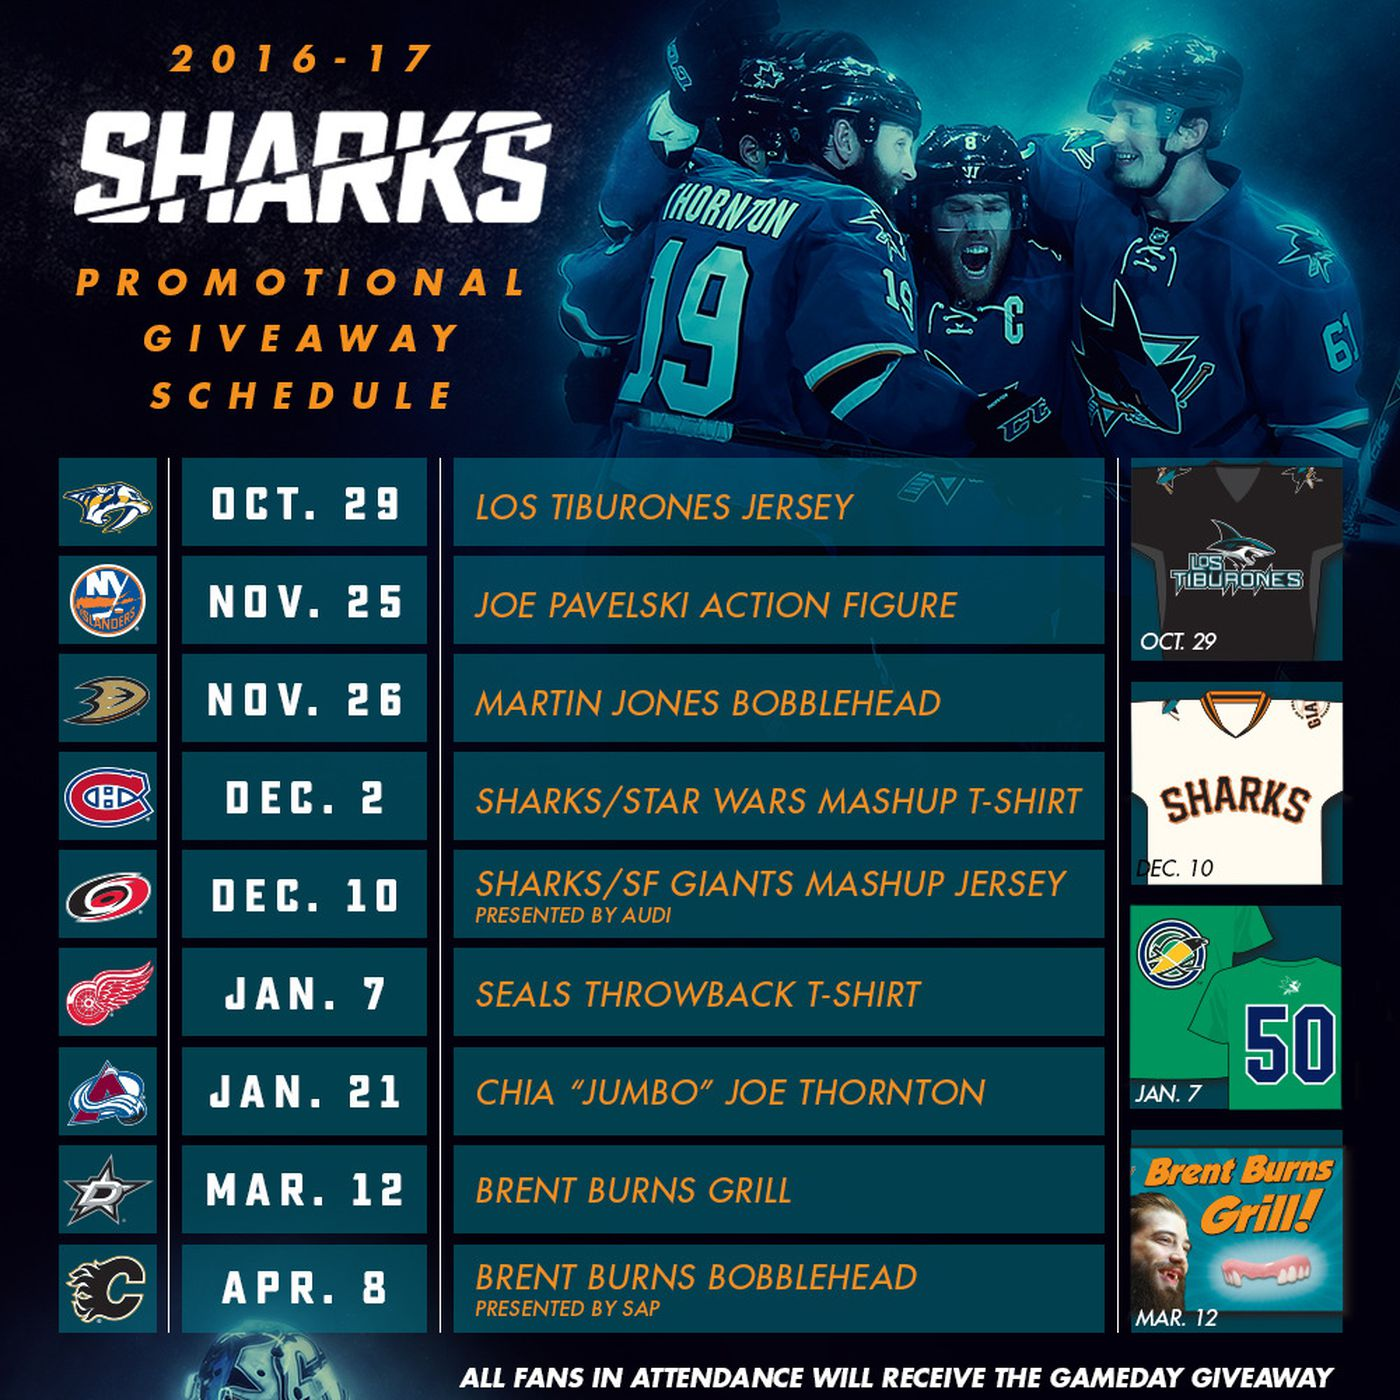 san jose sharks unveil 2016-17 promotional schedule - fear the fin